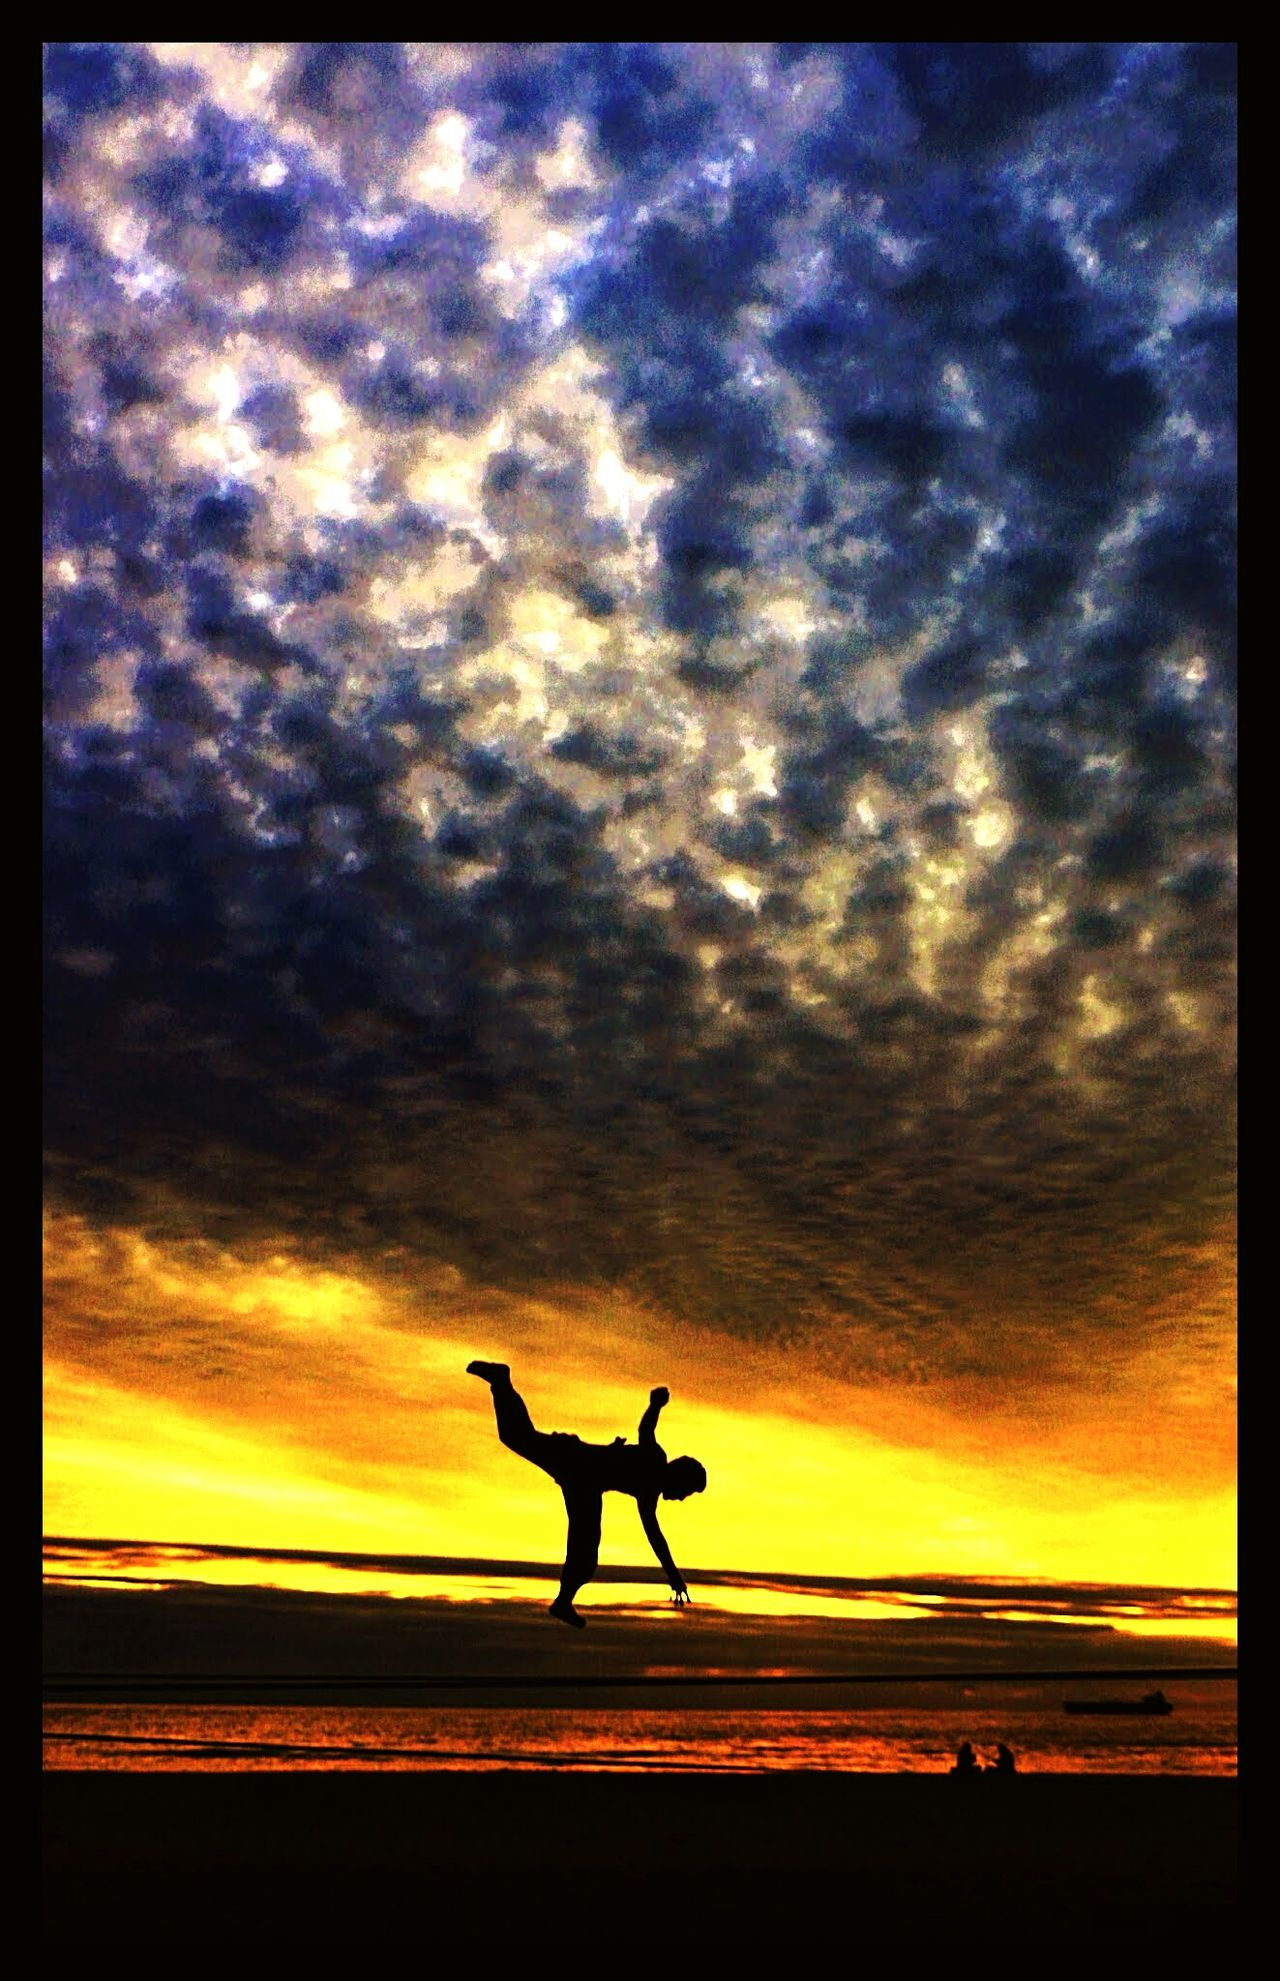 43 Golden Moments Colour Of Life Slackline Slacklife Slackvida Slaker Equilibrio Viña Del Mar Trick N Sunset Las Salinas Arena Mar Ejercicio Beach Beach Life Travel Enjoying Life Relaxing Travel Photography En El Aire Descanso Giros Relax